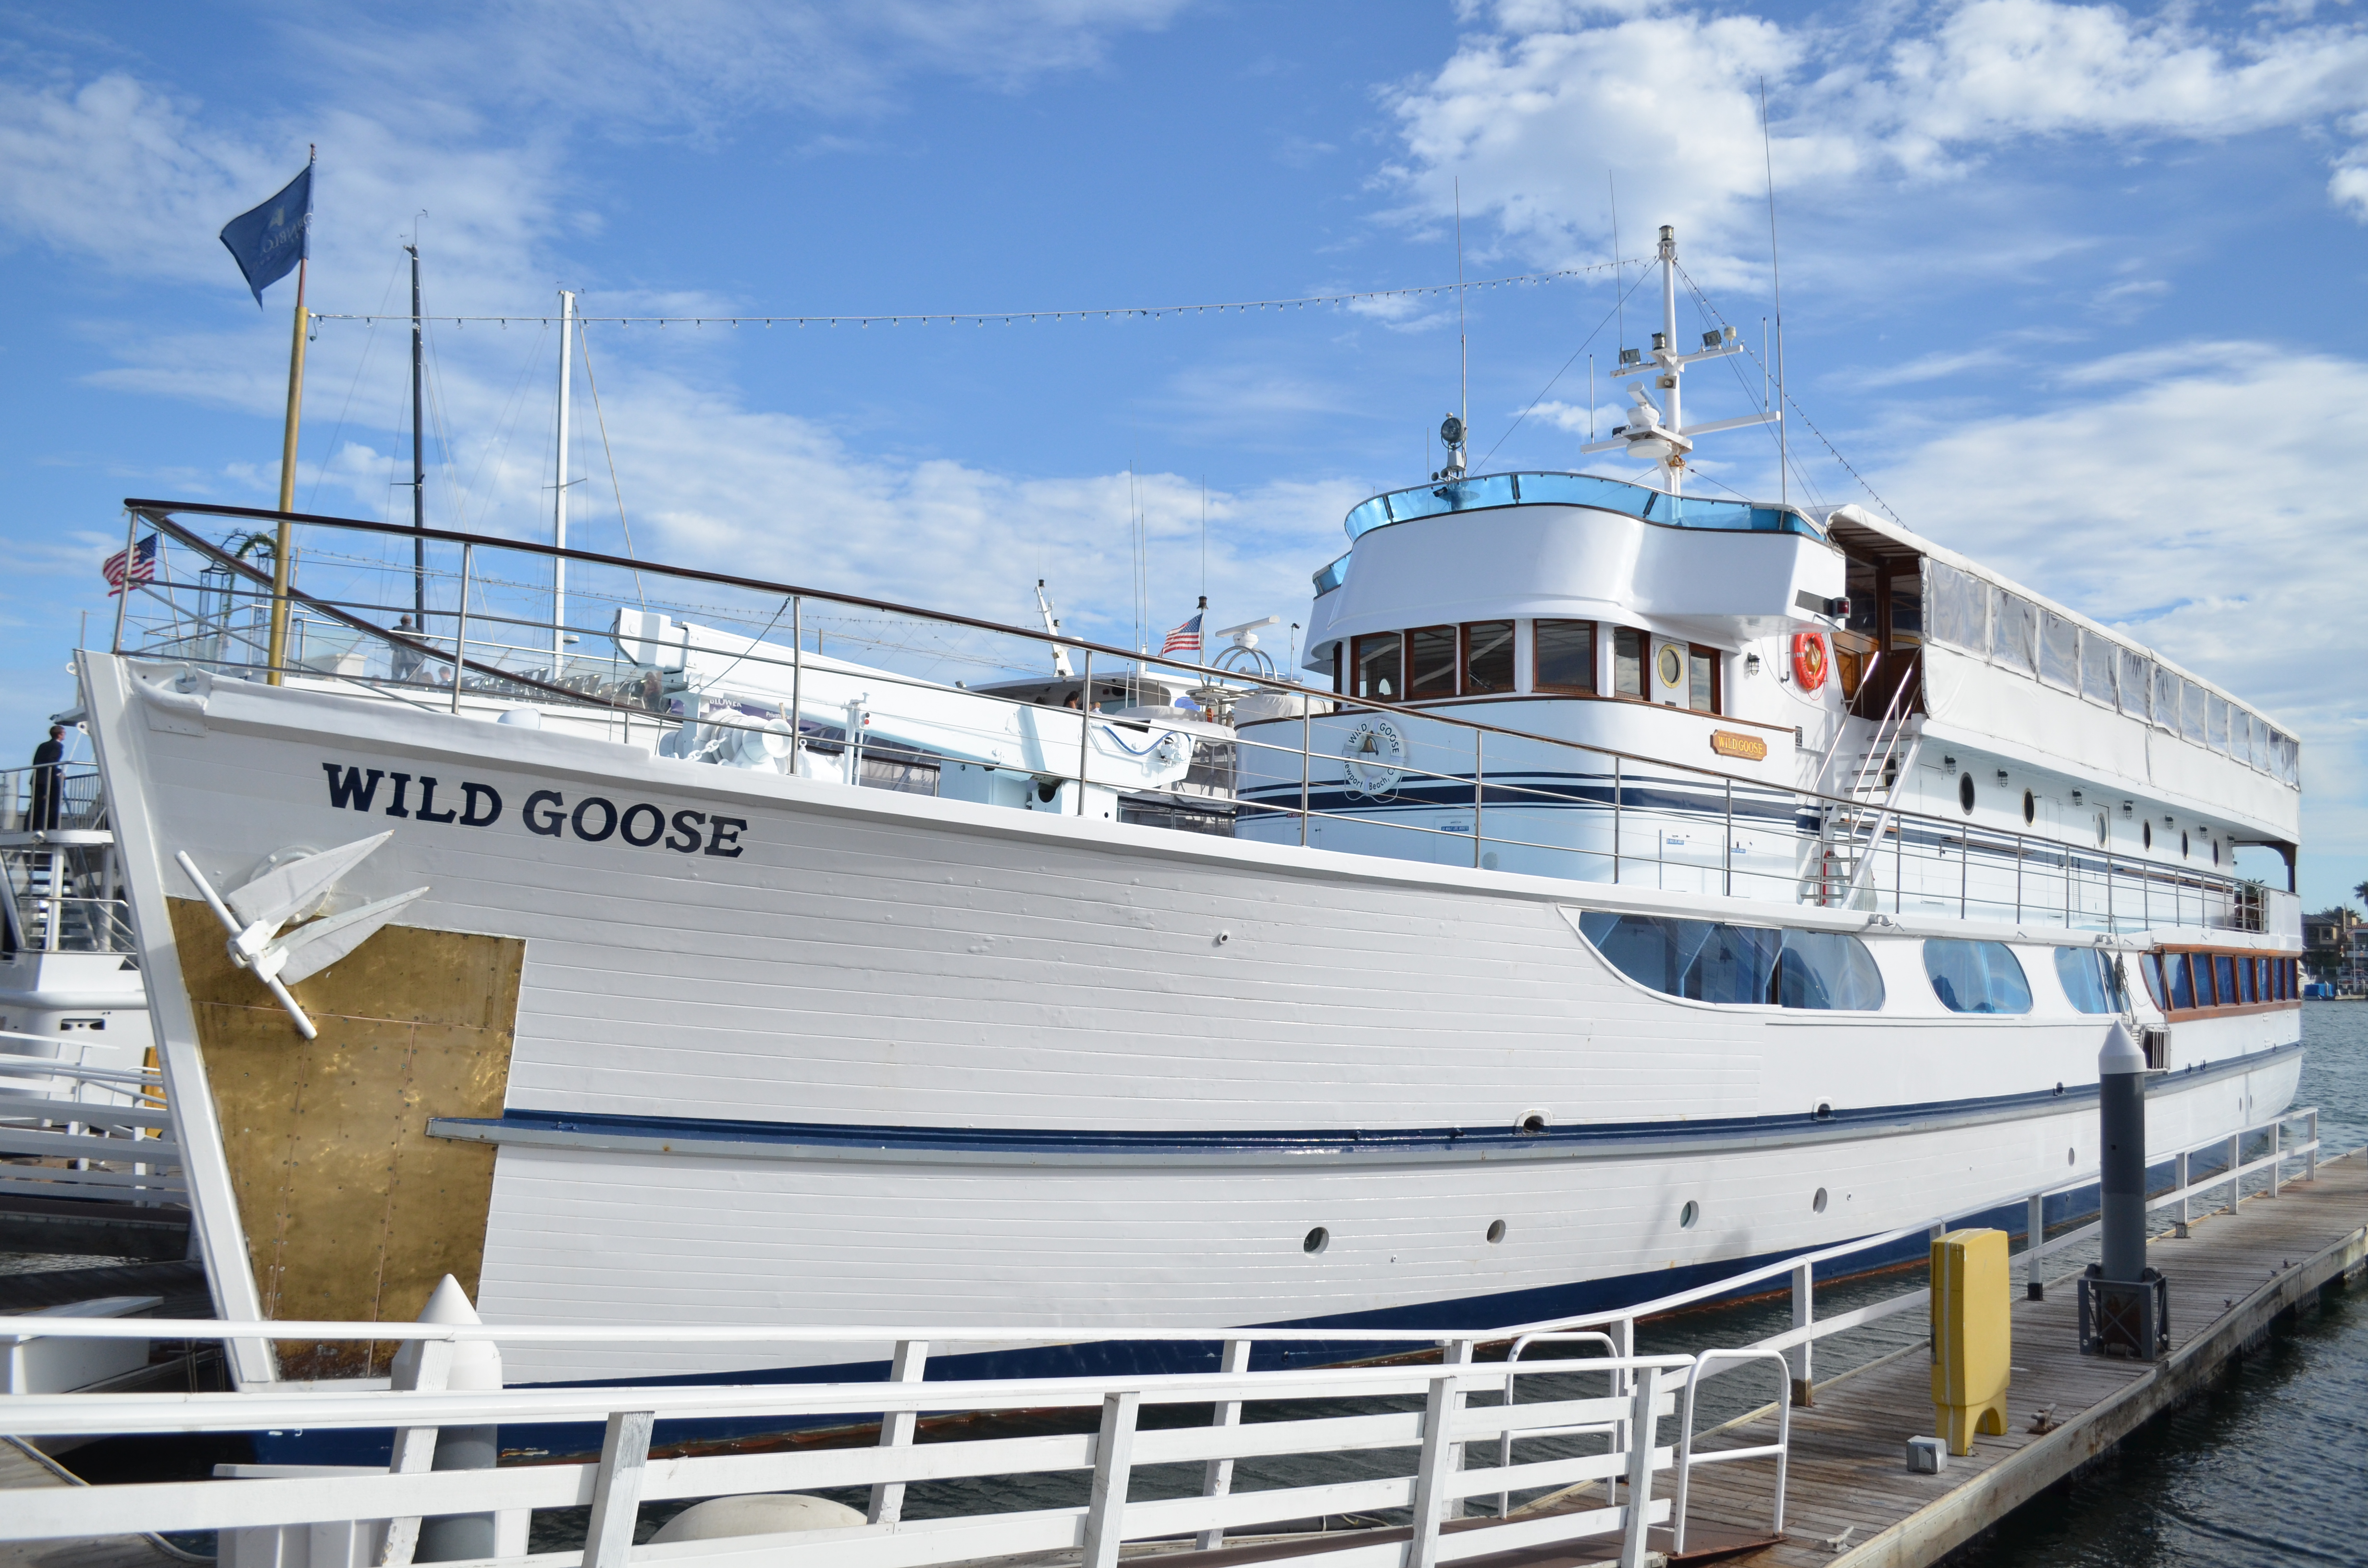 The Wild Goose at her berth.